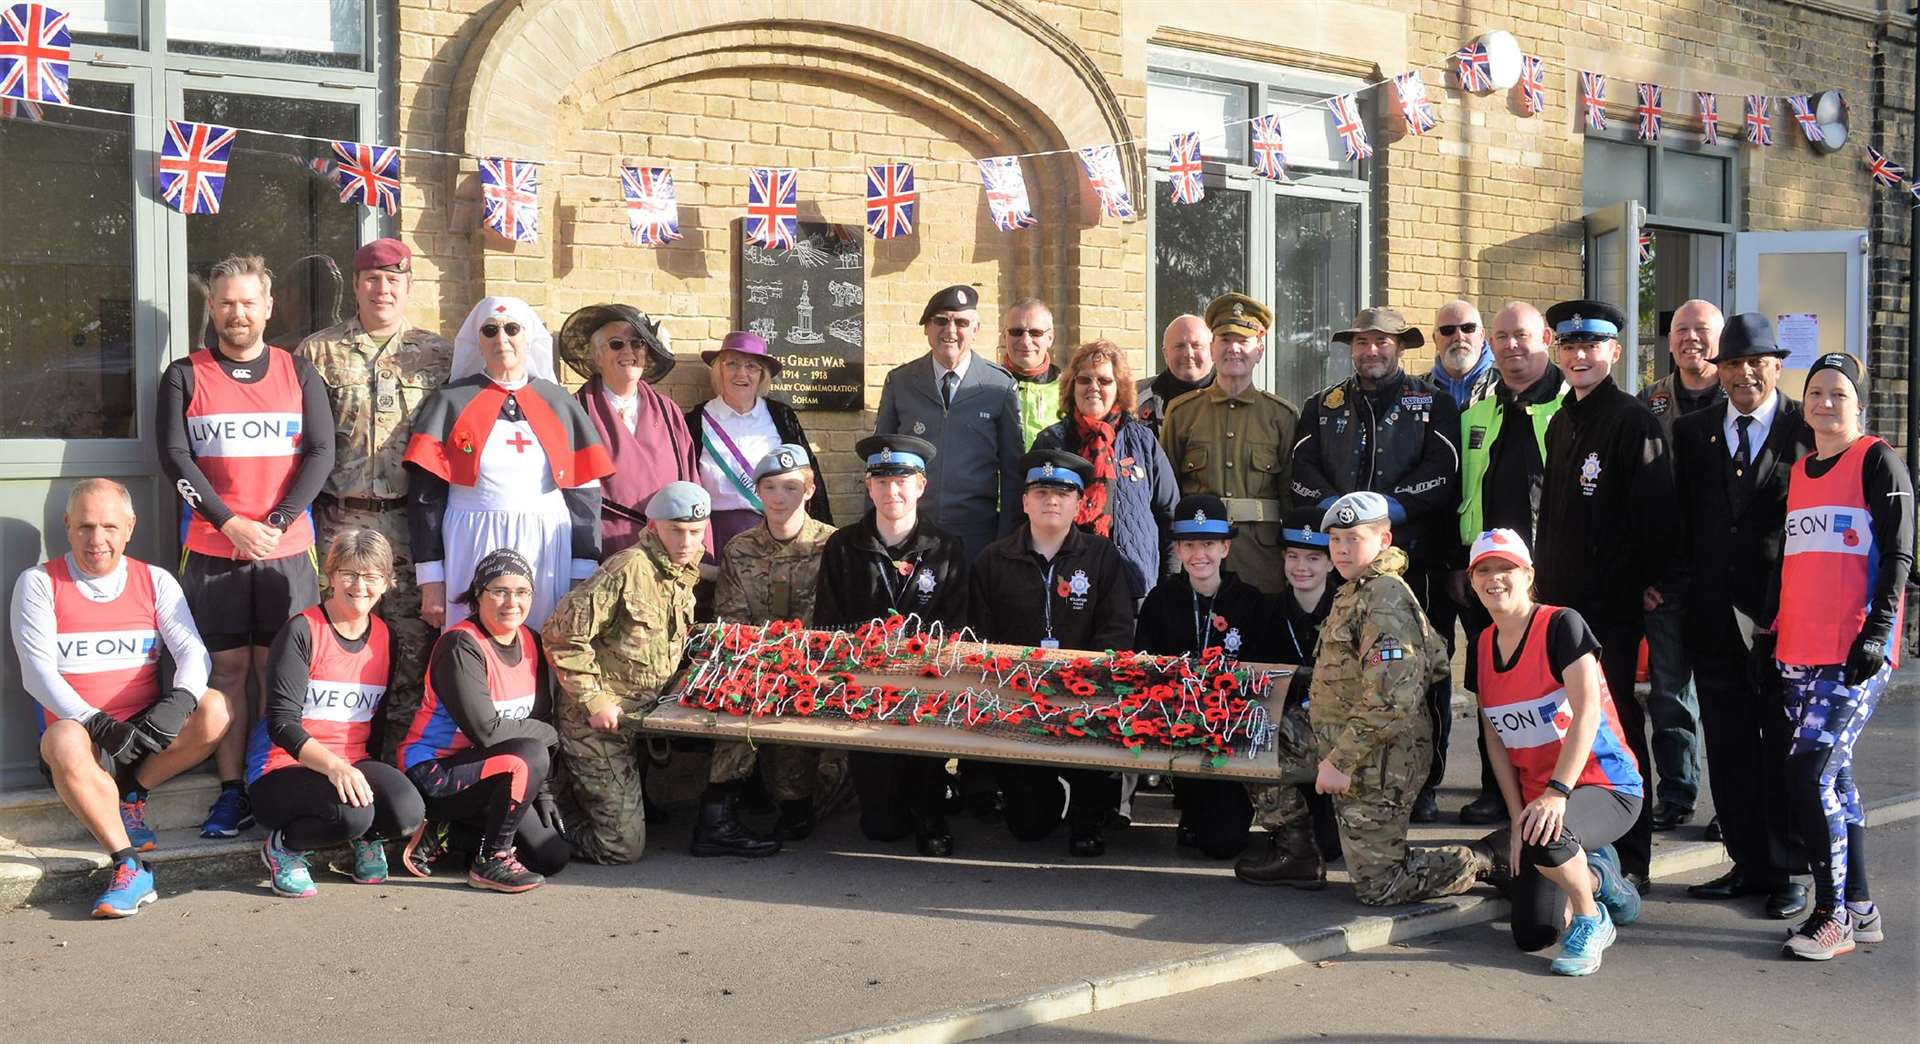 Soham's Royal British Legion launched its Poppy Appeal with a special event